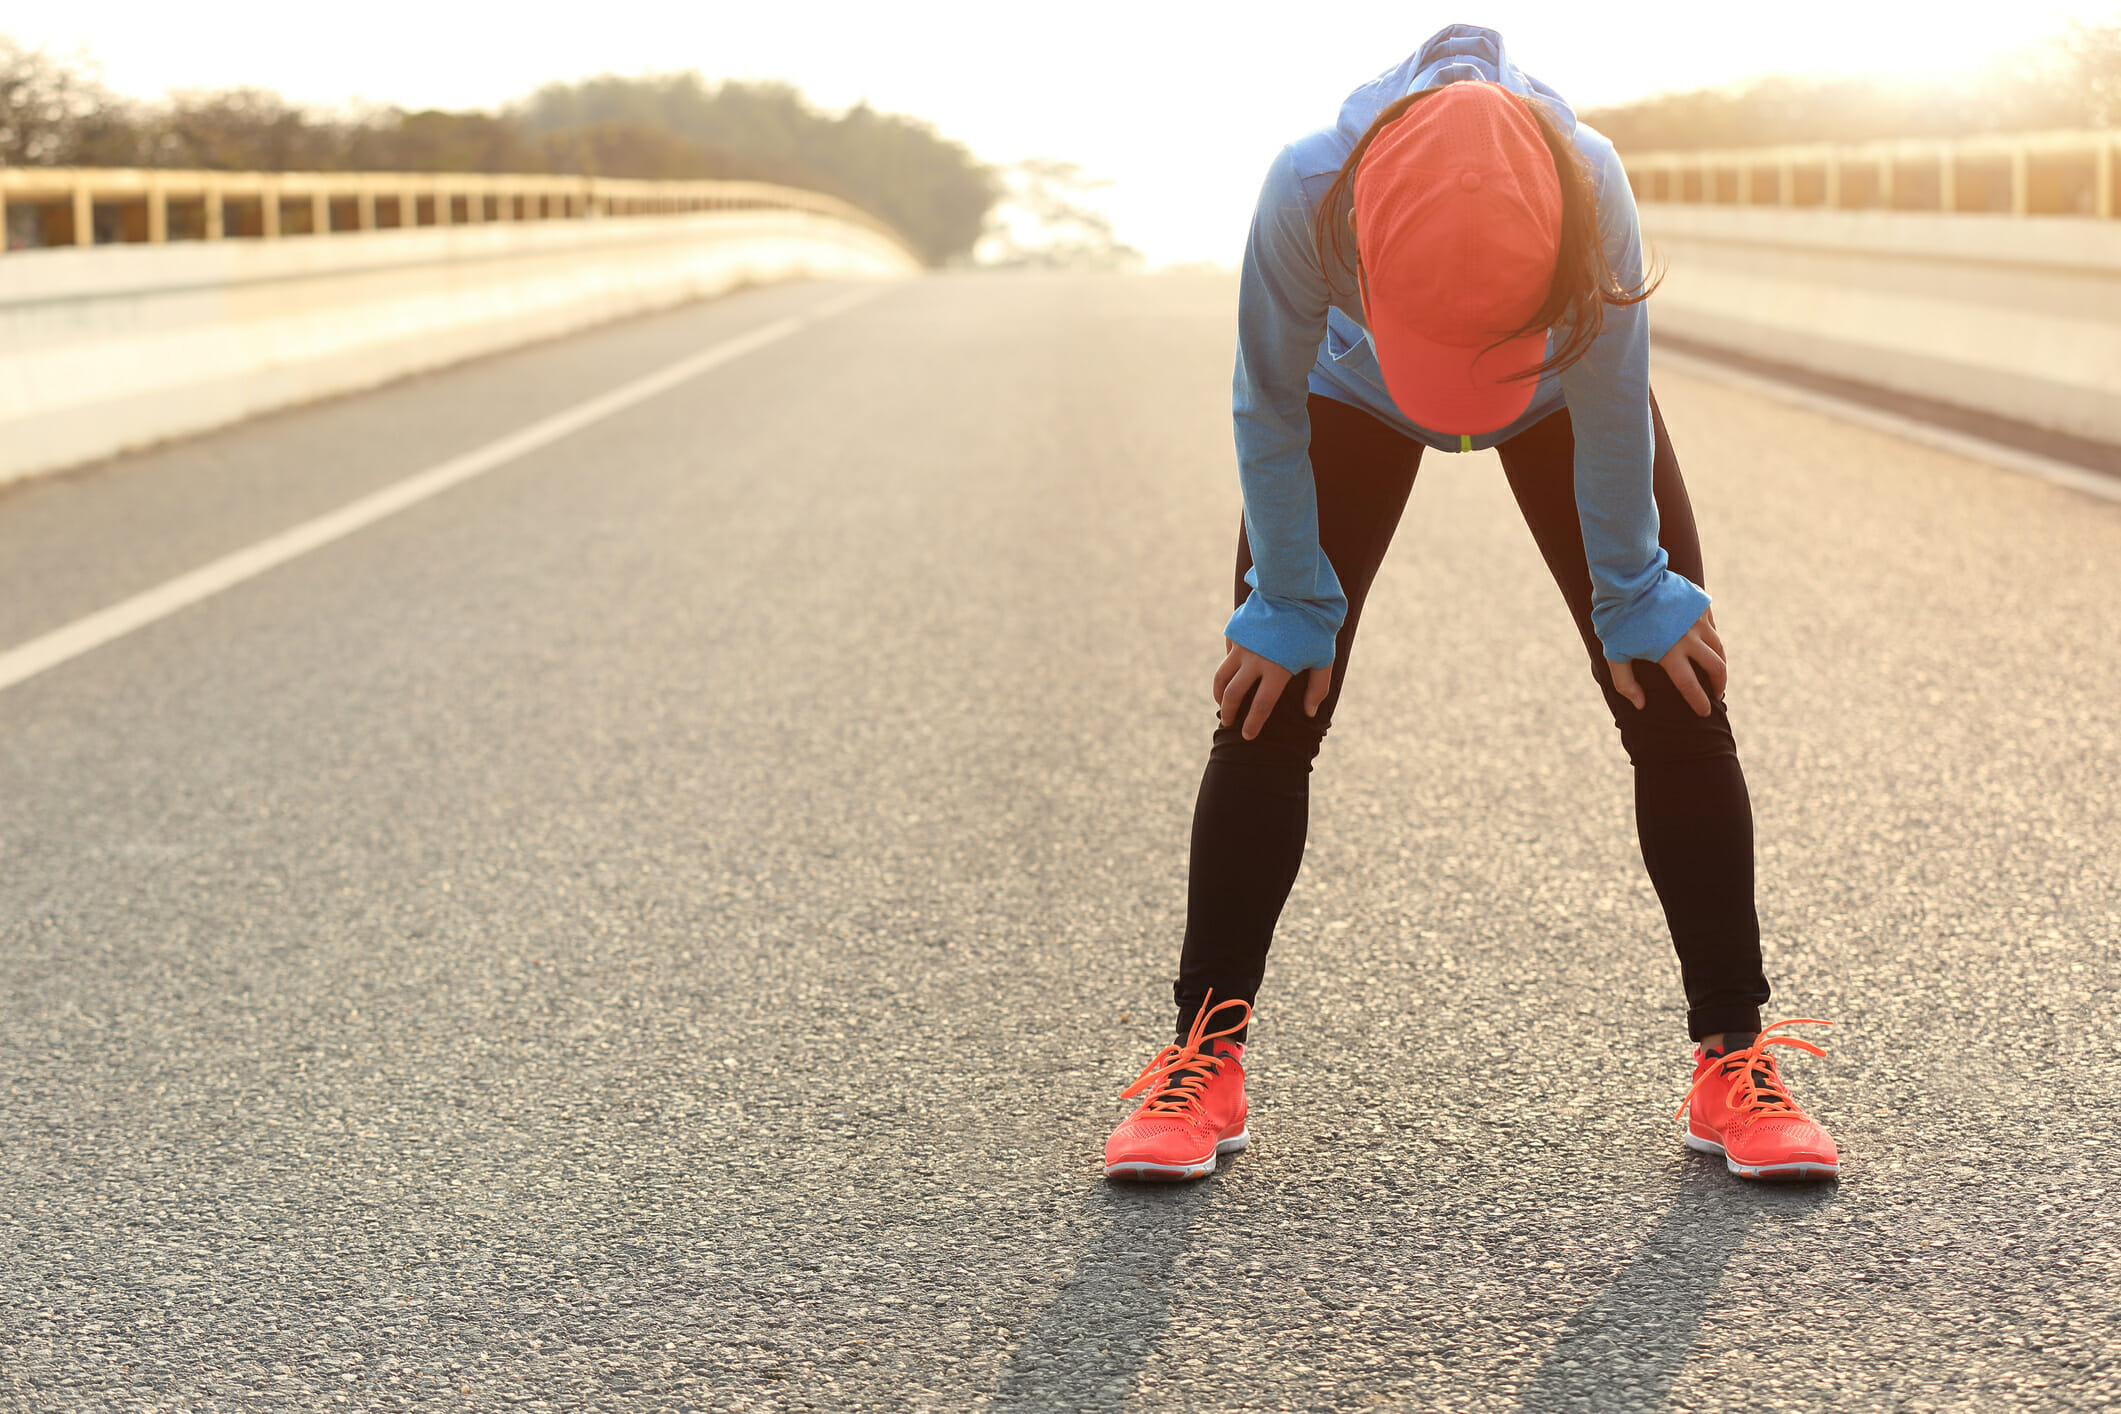 MCL Injuries and How Physical Therapy Can Help